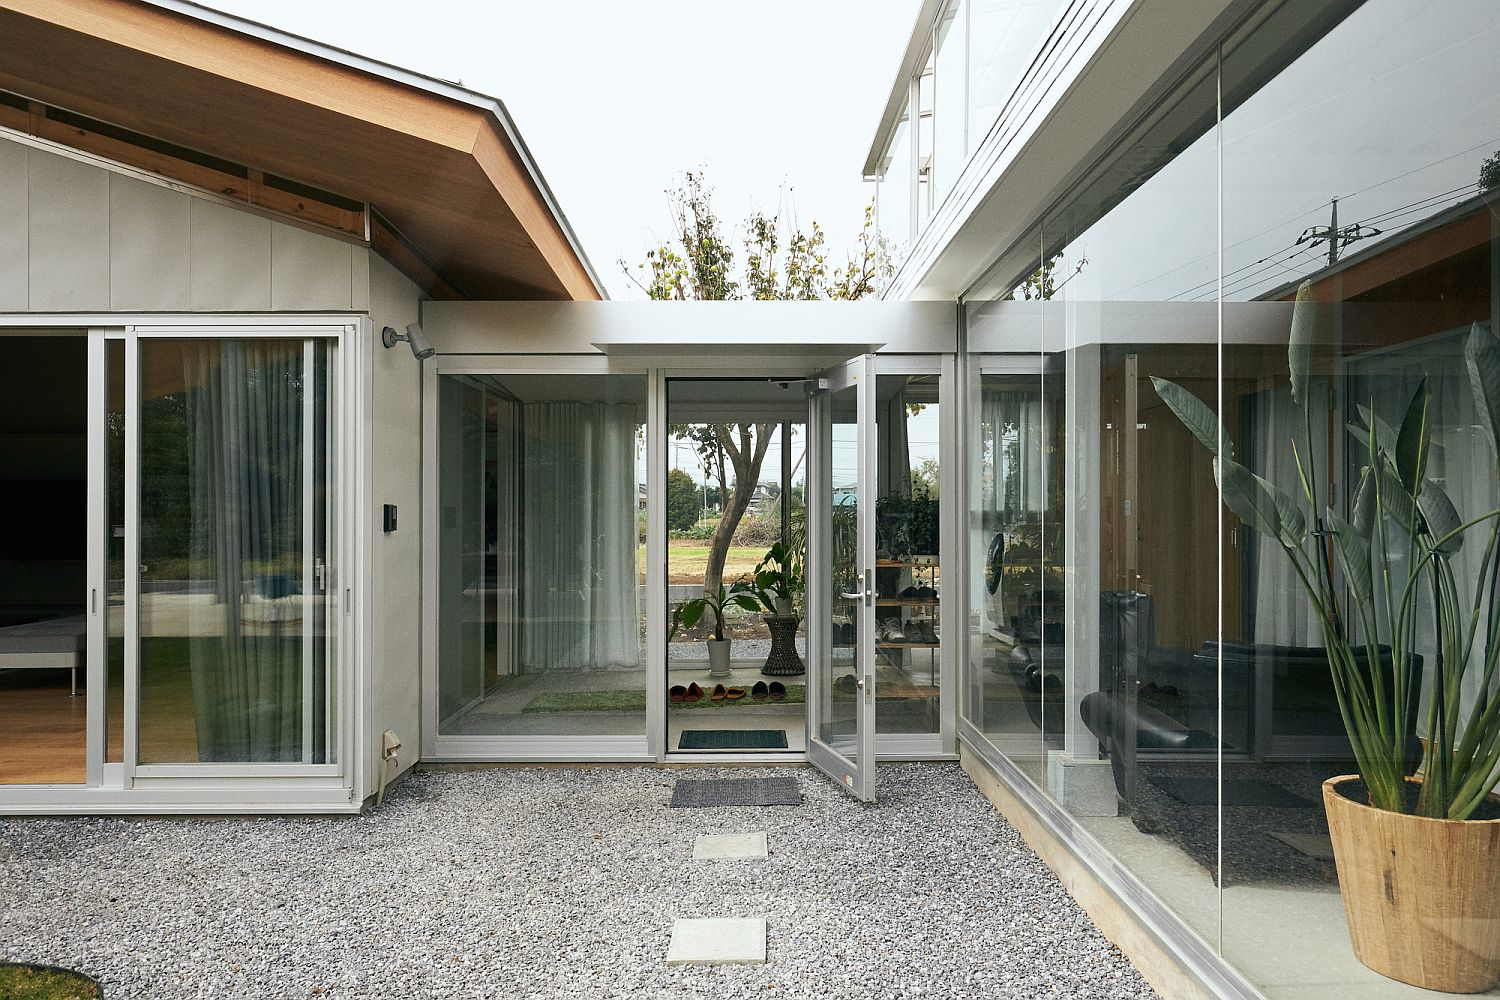 Covered walkways and multiple gardens add to the timeless appeal of the house